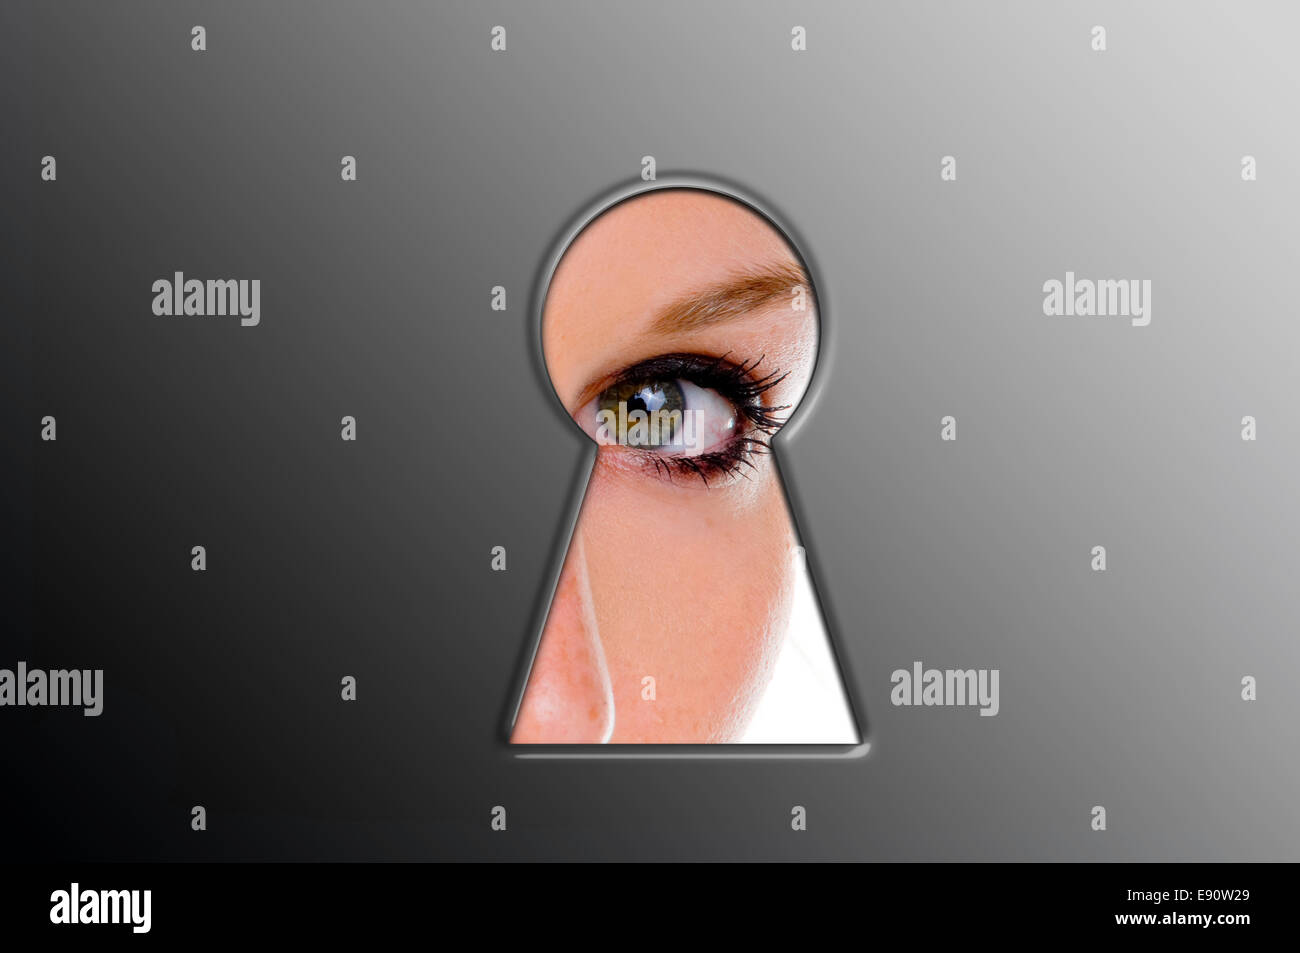 Spy - Stock Image